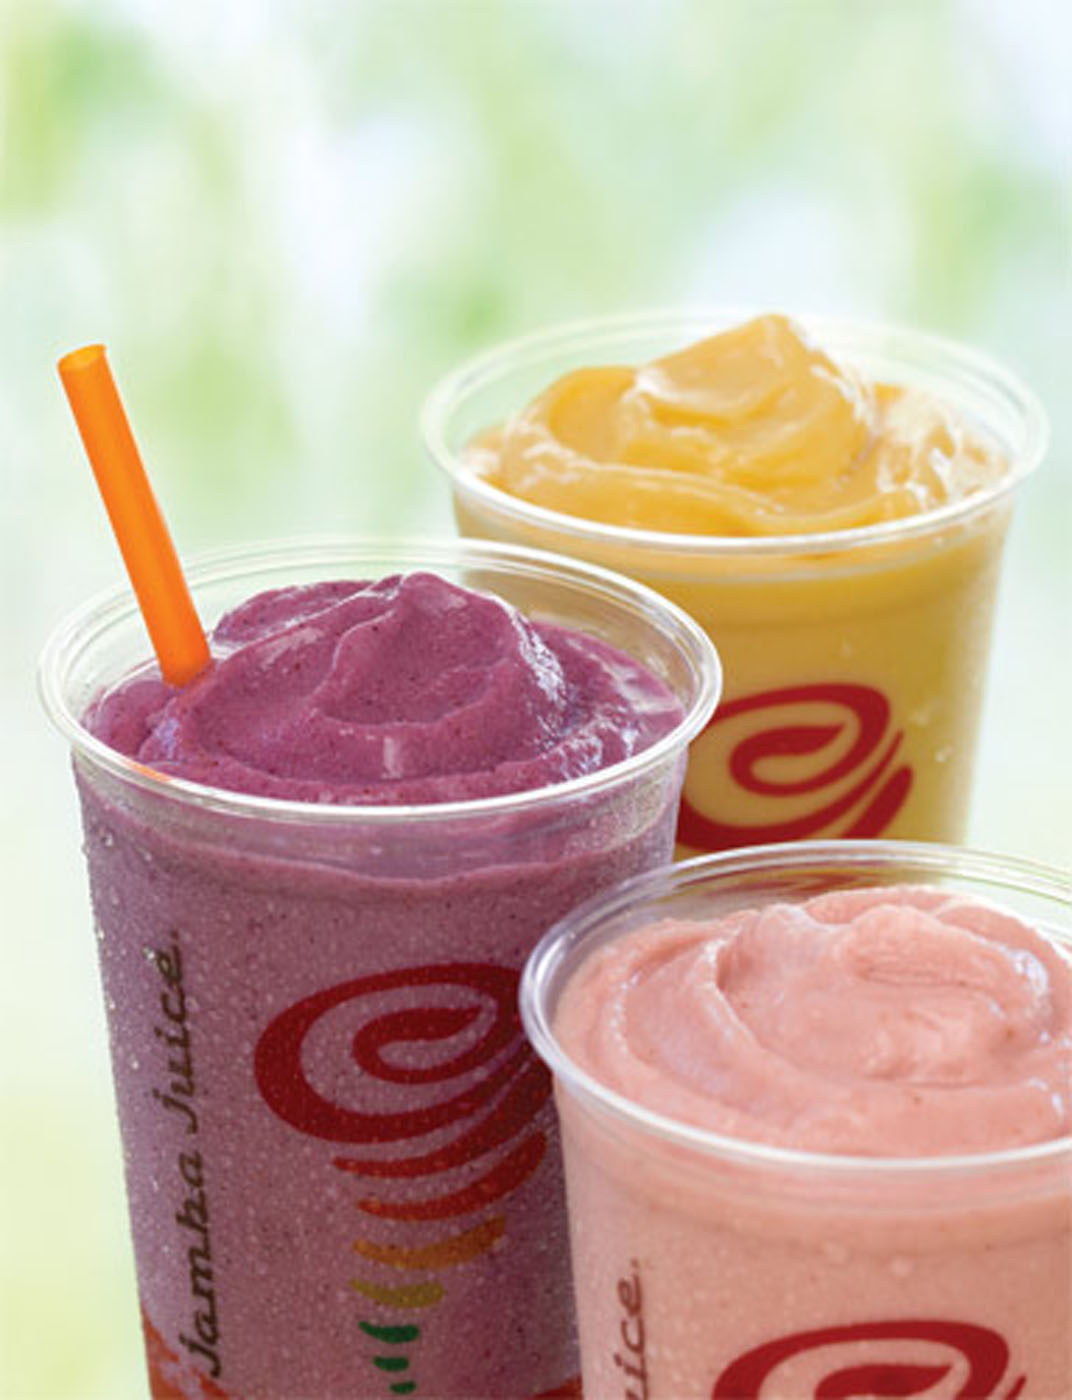 Serving up Wholesome Nutrition & Healthy Living Jamba Juice started out as a little juice shop with a big idea - that healthy living starts locally. We've made it our purpose to infuse that thought into everything we do.